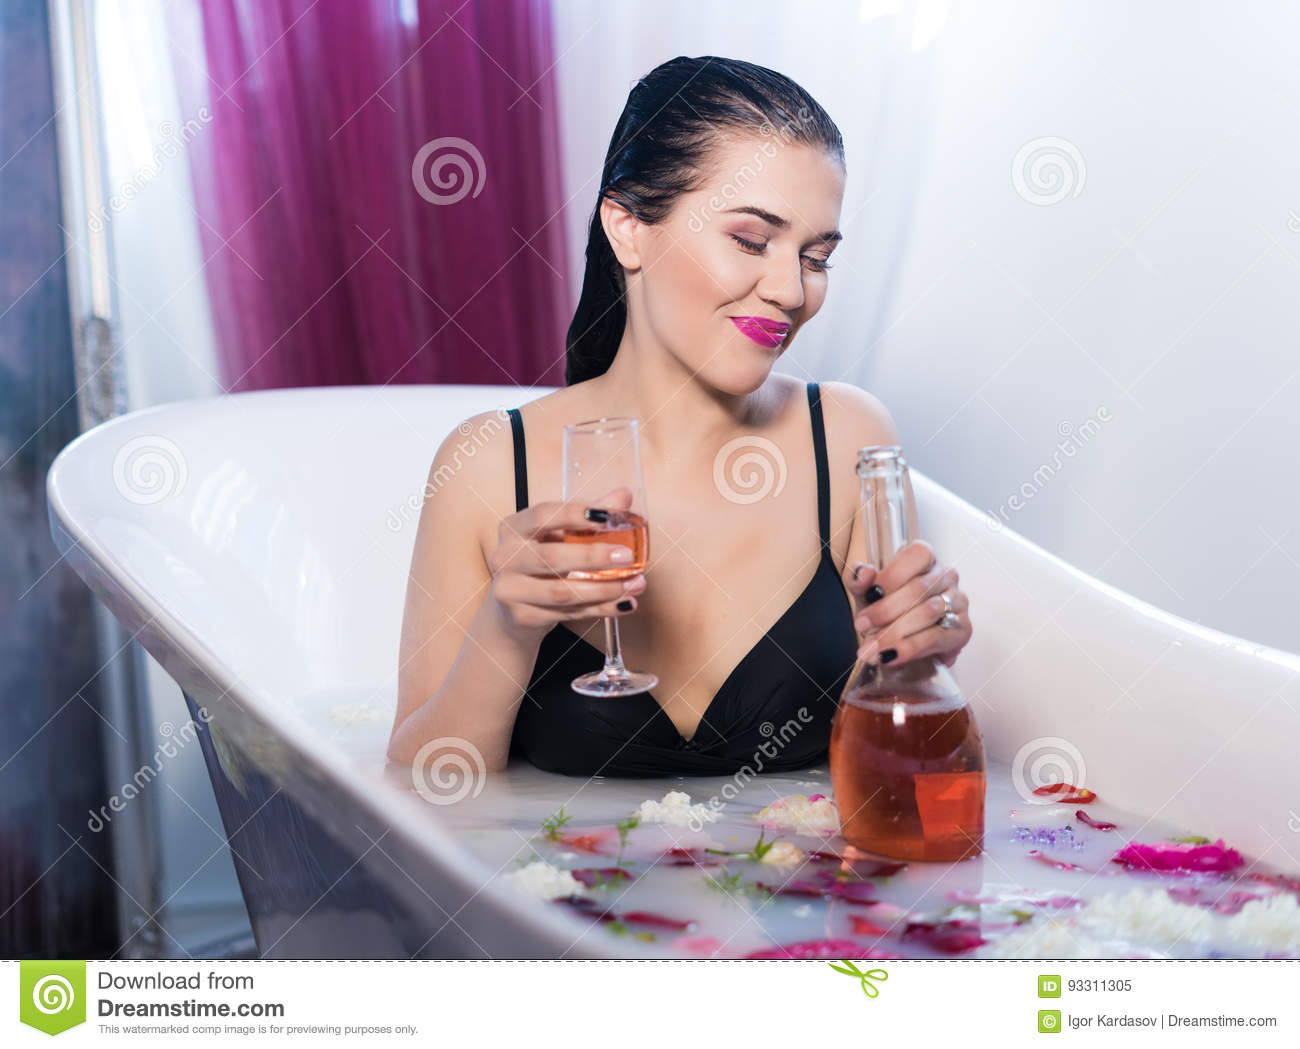 Topic Hot sexy drunk girls seems impossible